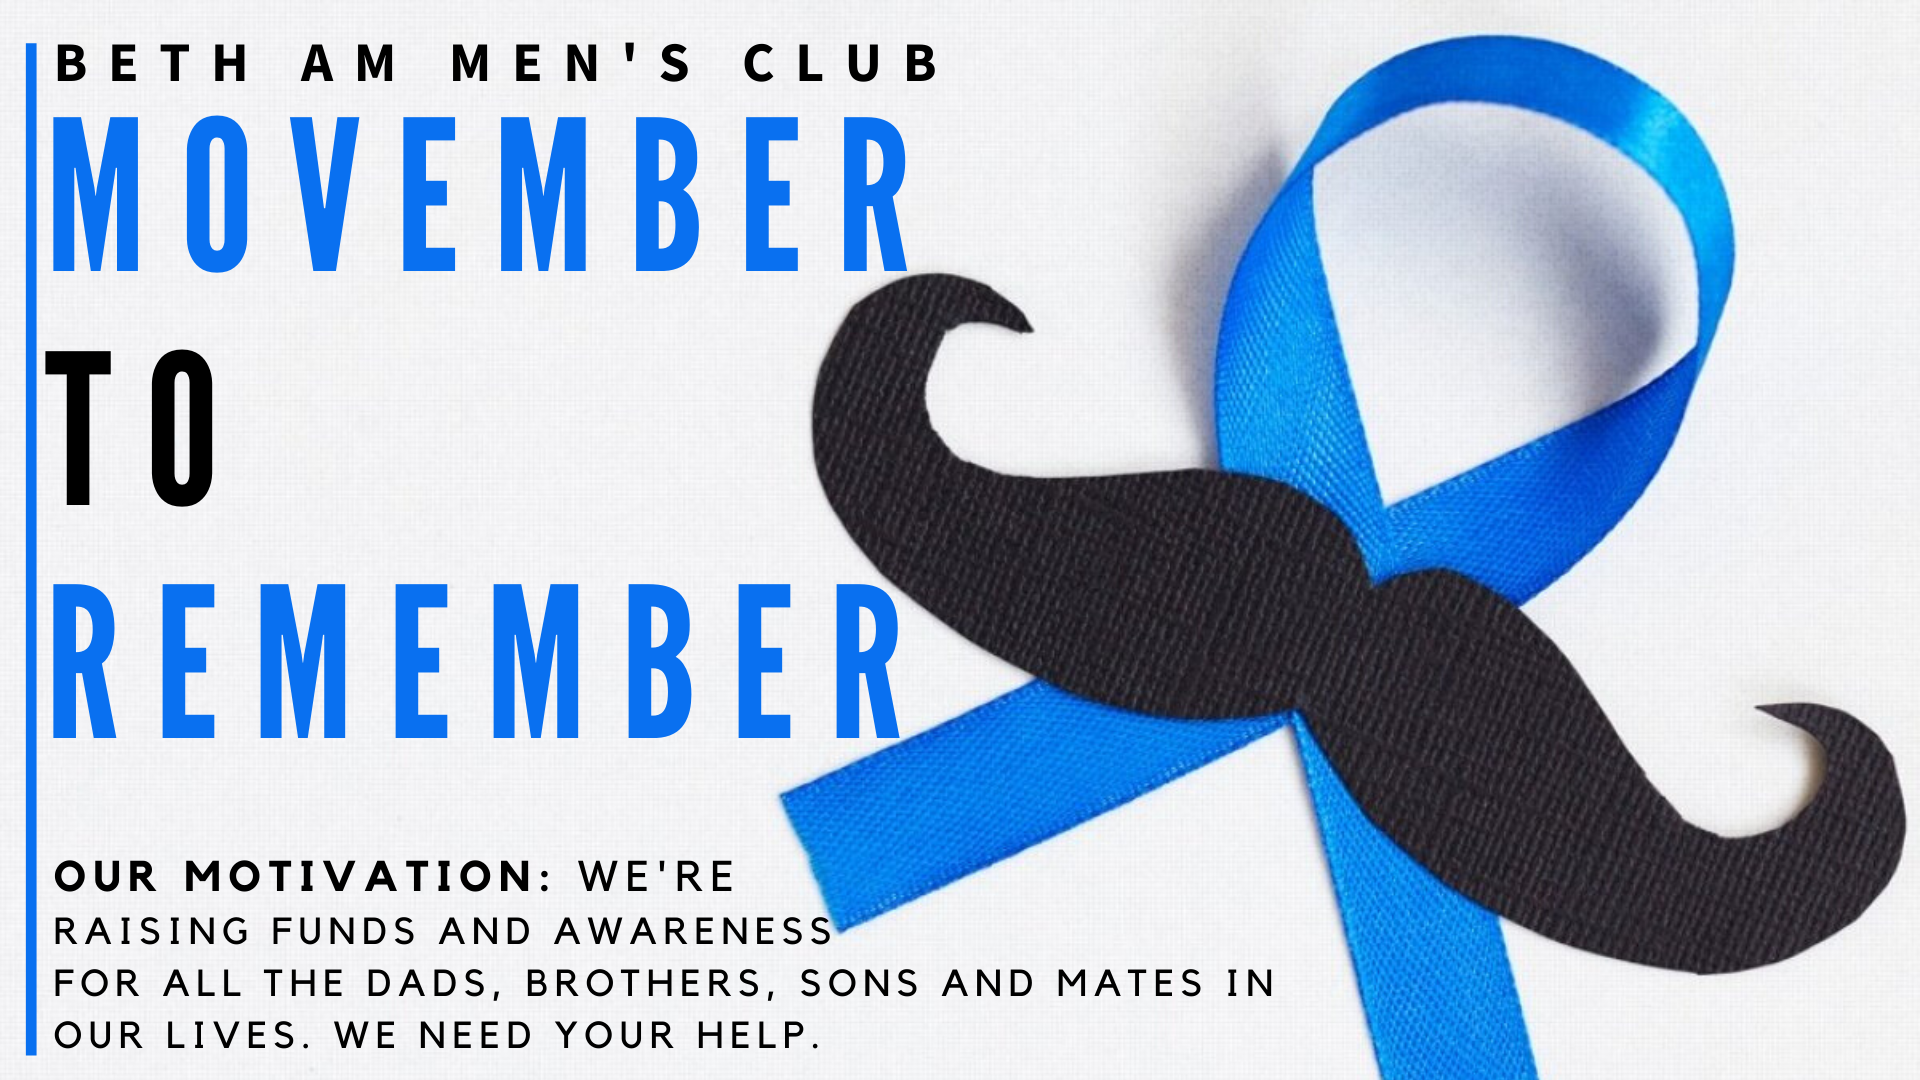 """<a href=""""https://www.betham.com/bamcmovember#""""                                     target="""""""">                                                                 <span class=""""slider_title"""">                                     Movember To Remember                                </span>                                                                 </a>                                                                                                                                                                                      <a href=""""https://www.betham.com/bamcmovember#"""" class=""""slider_link""""                             target="""""""">                             Donate Today                            </a>"""